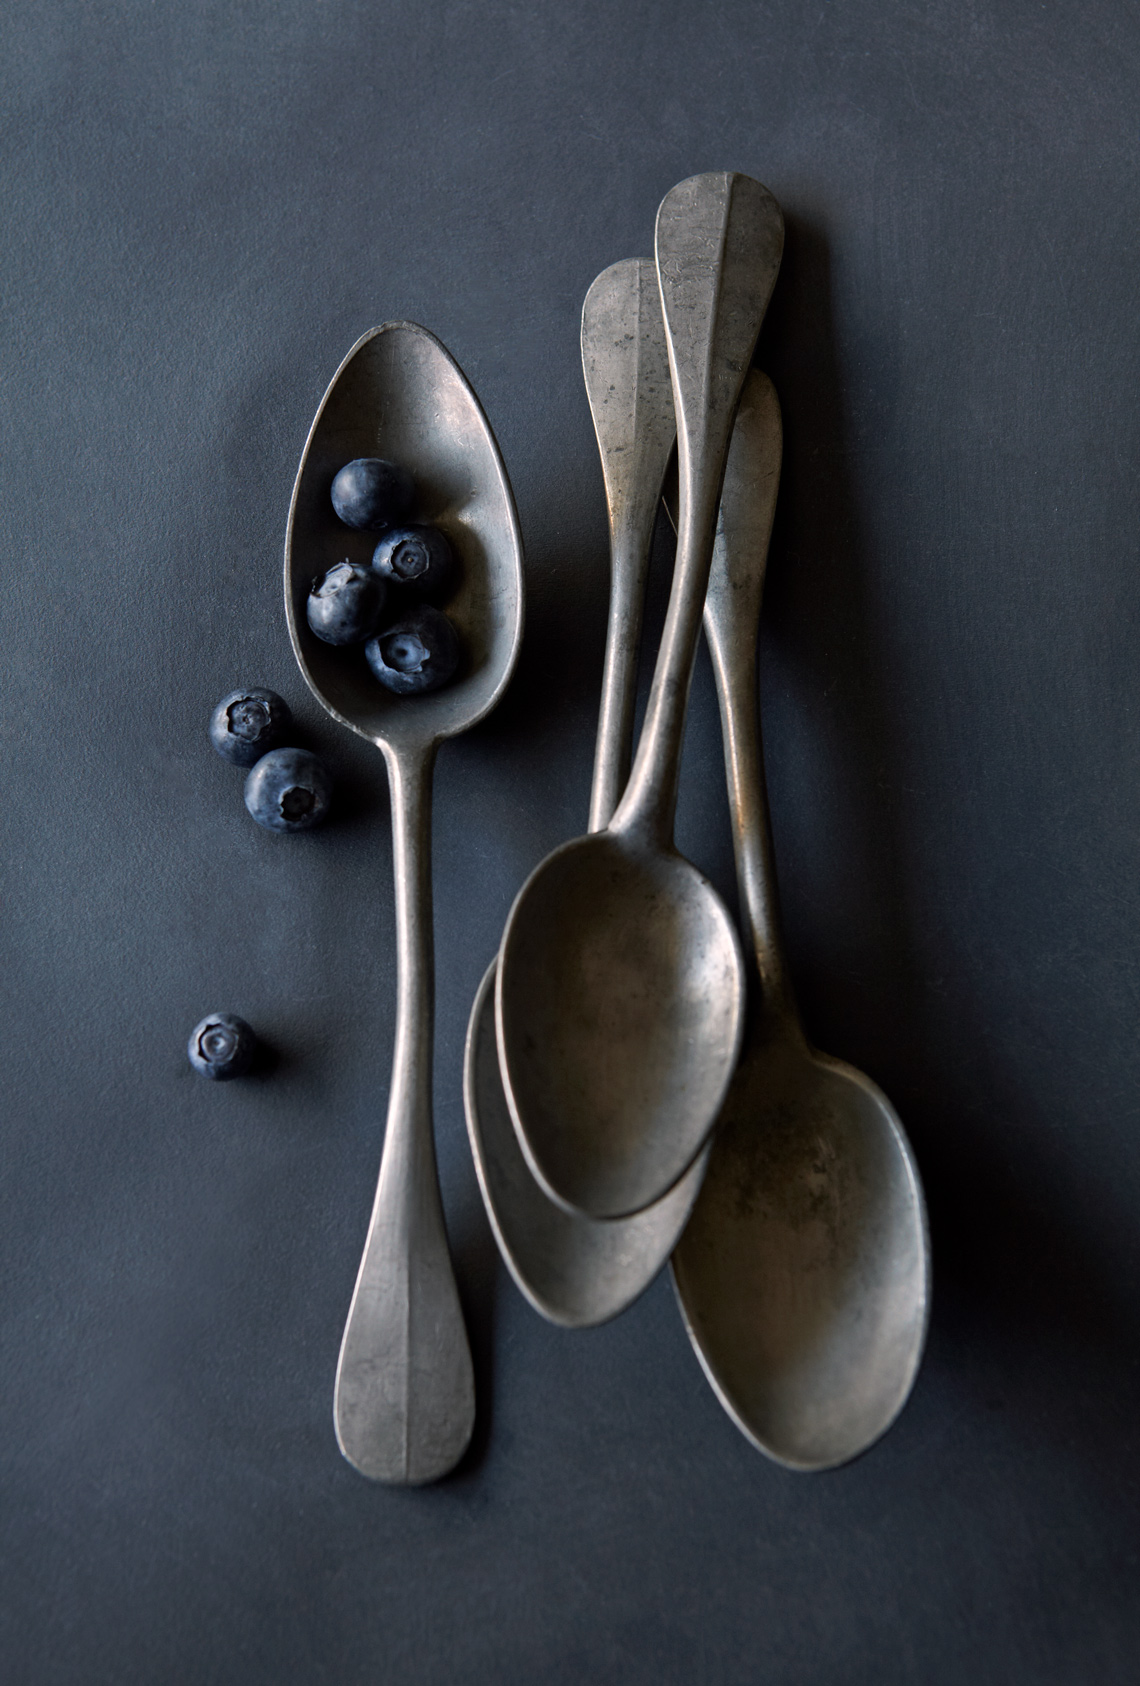 spoons-and-blueberries